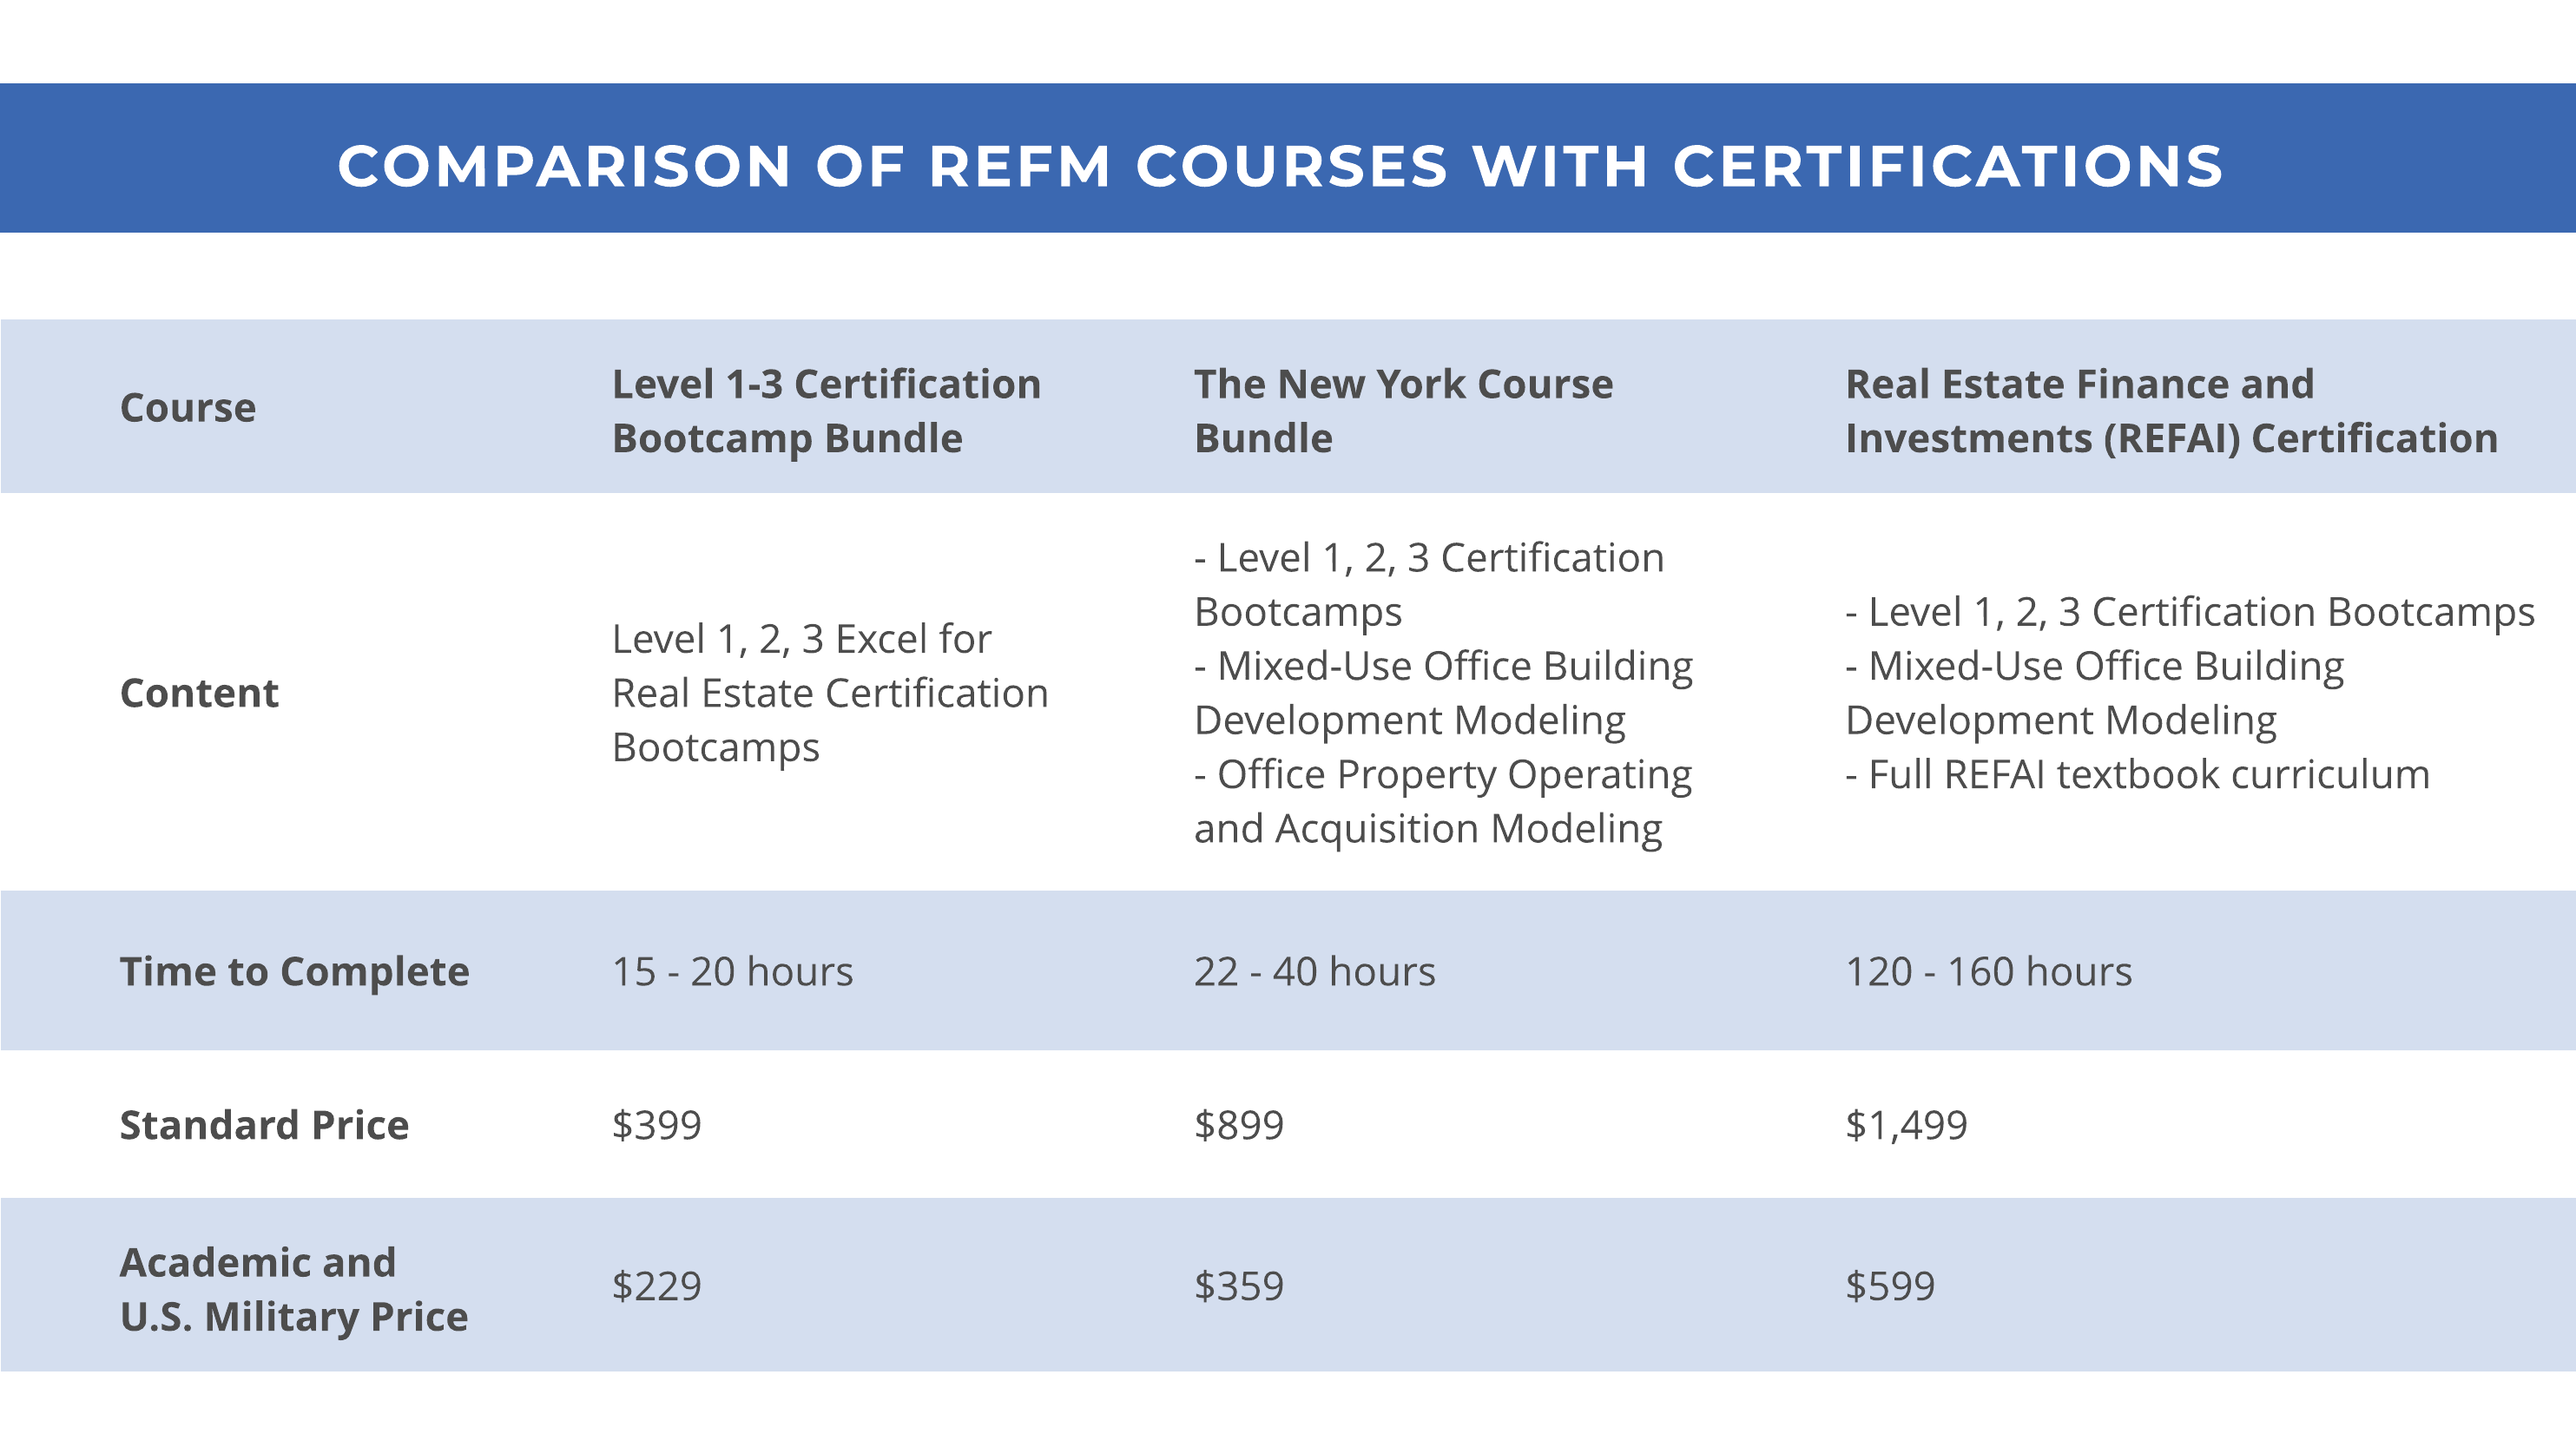 Comparison of REFM Courses with Certifications table